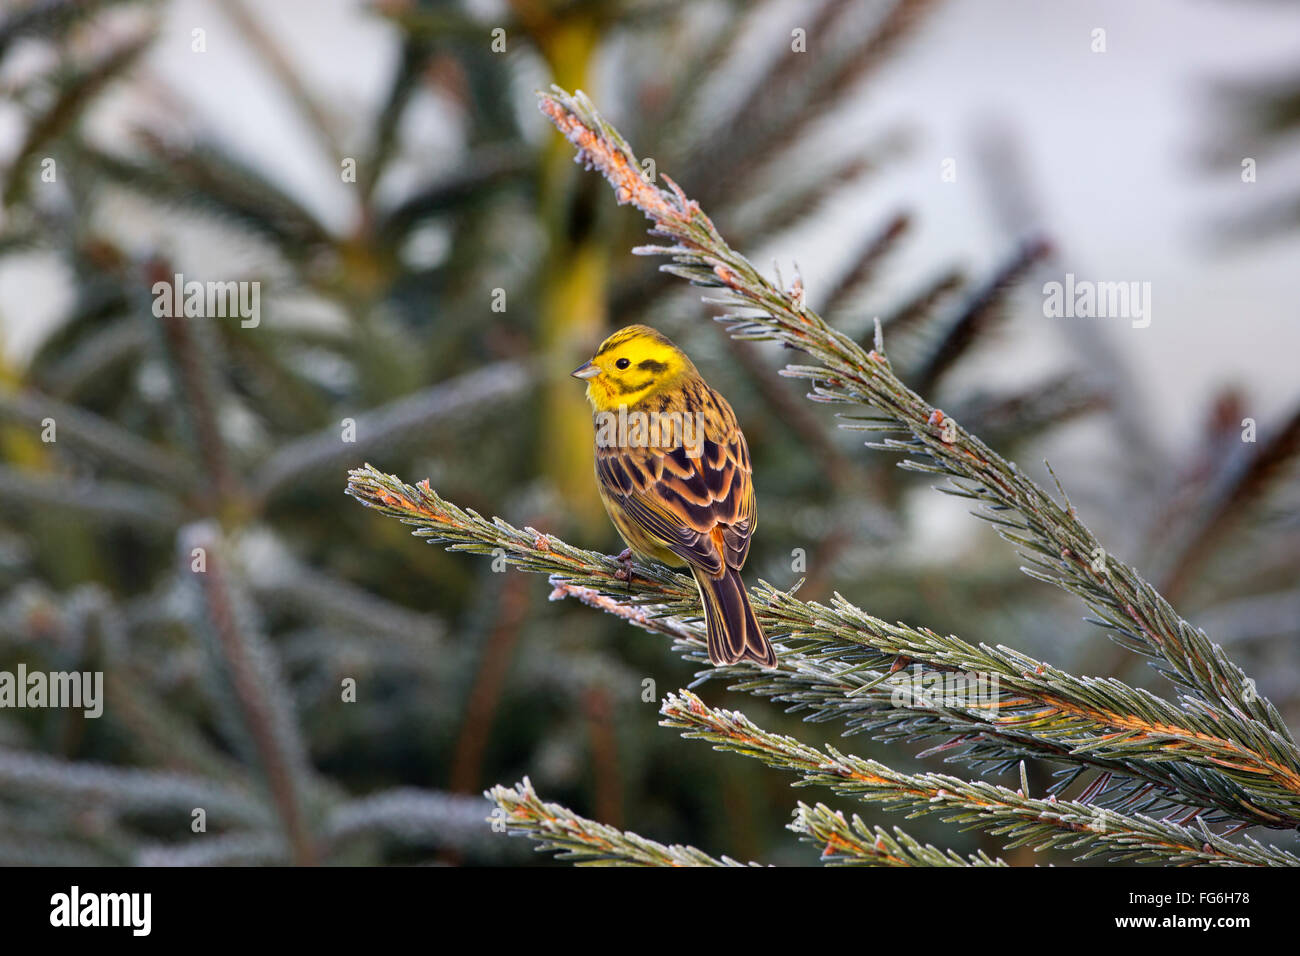 Yellowhammer Emberiza citinella perched on conifer on a frosty Winter morning - Stock Image